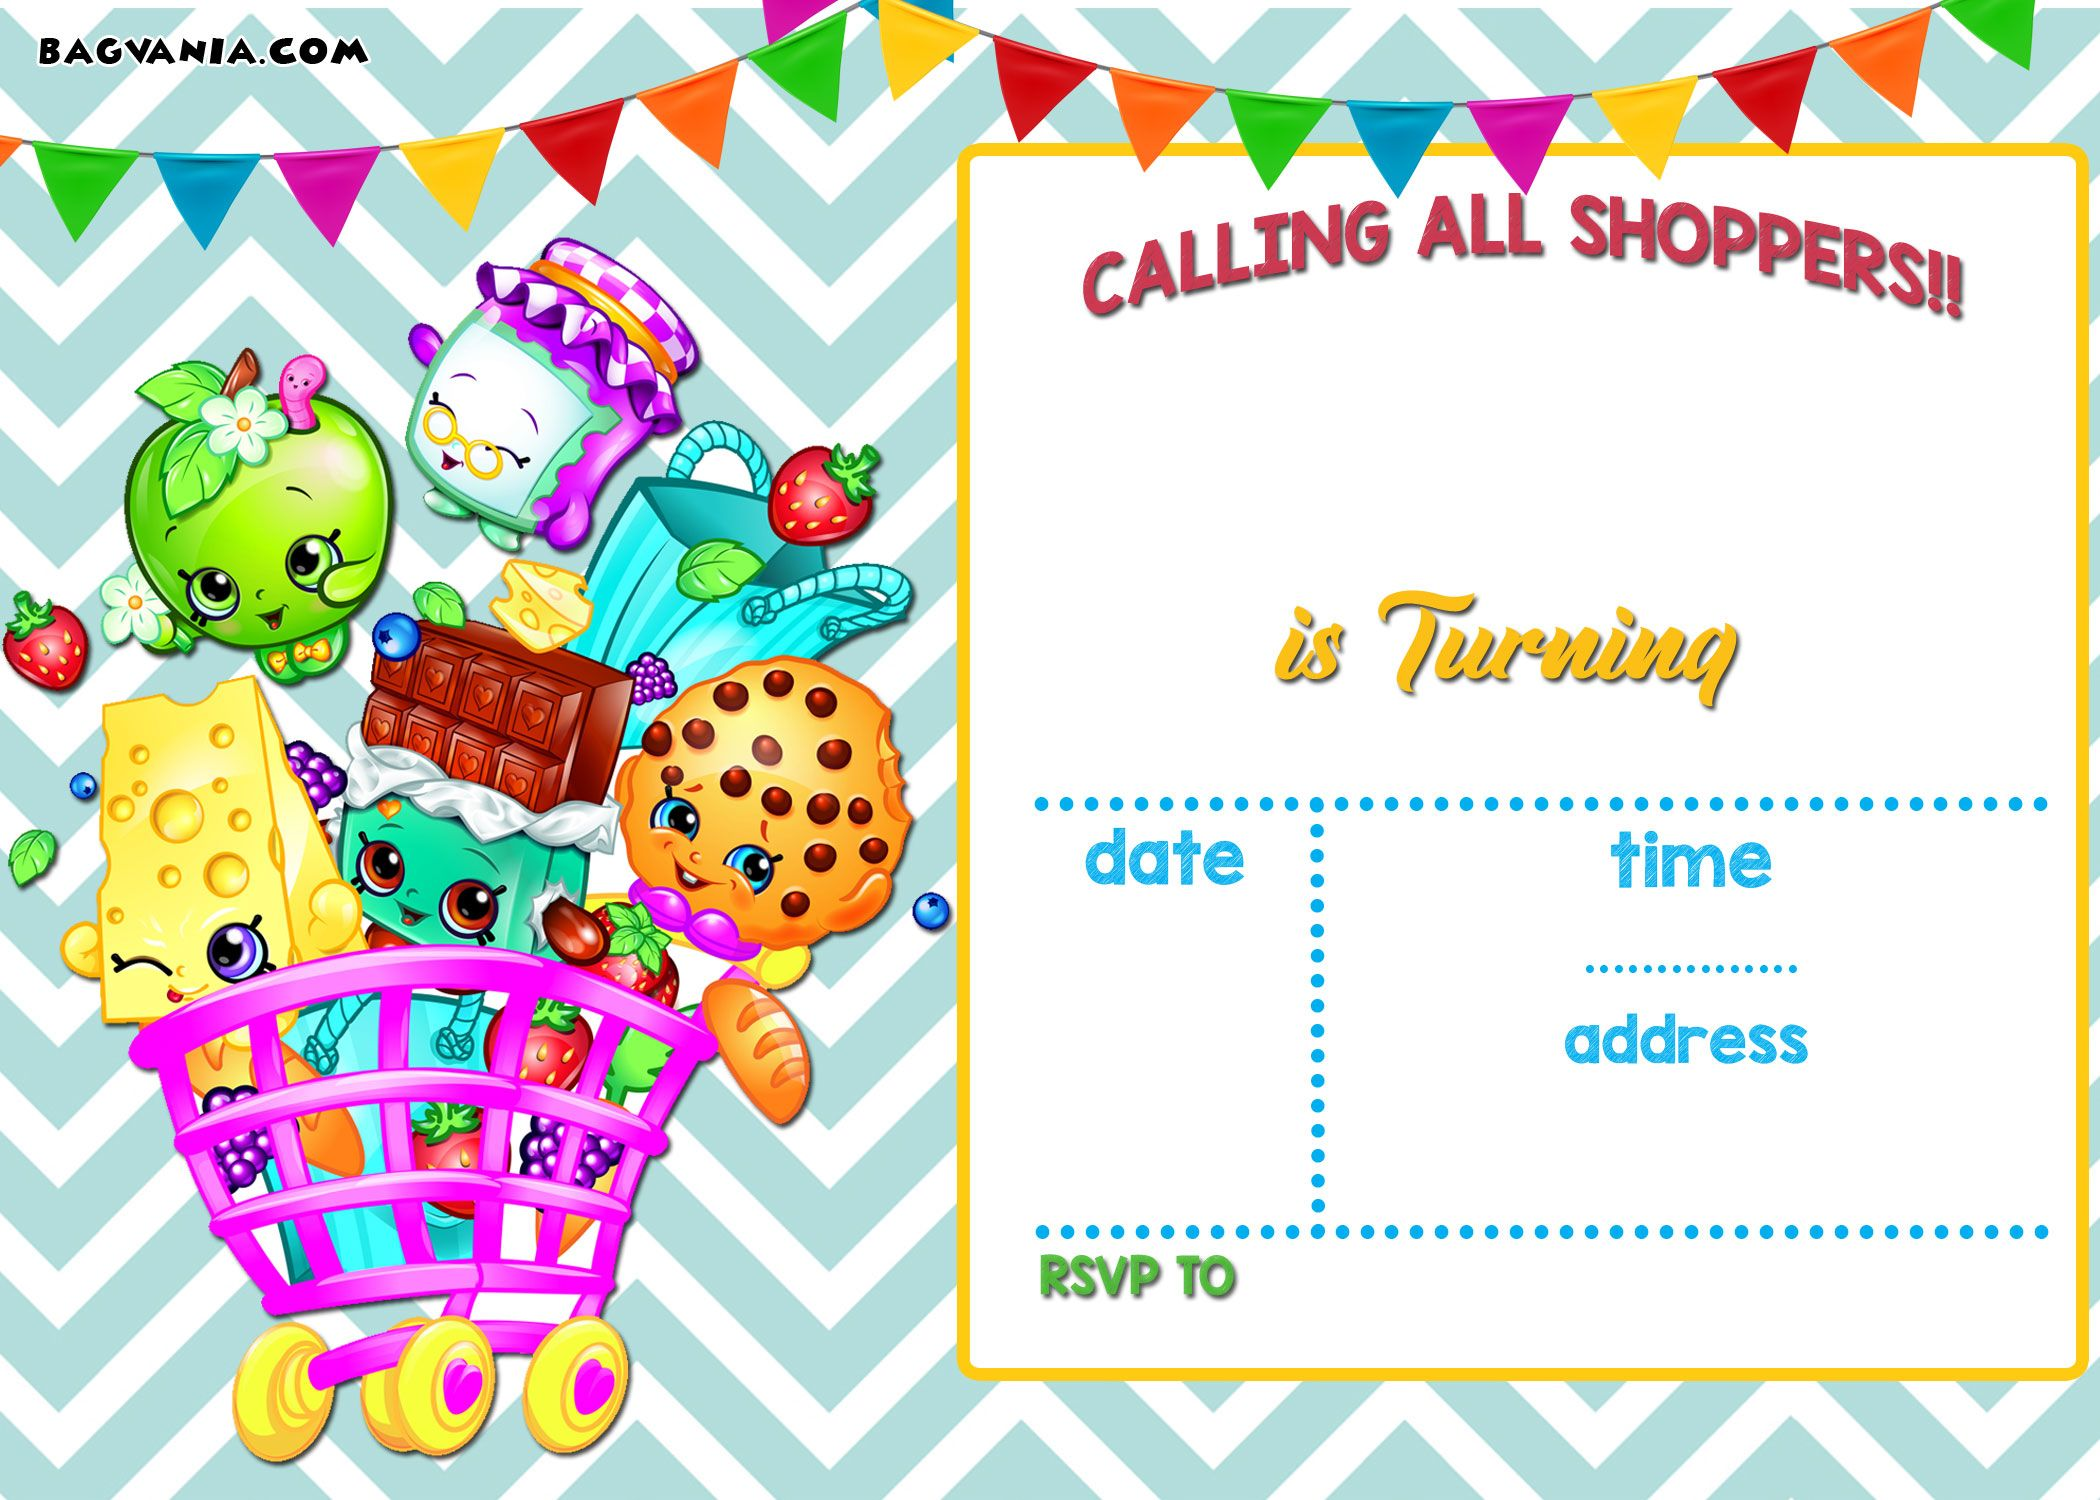 image relating to Shopkins Invitations Free Printable titled Awesome Contacting All Consumers! Listed here are Totally free Blank Shopkins